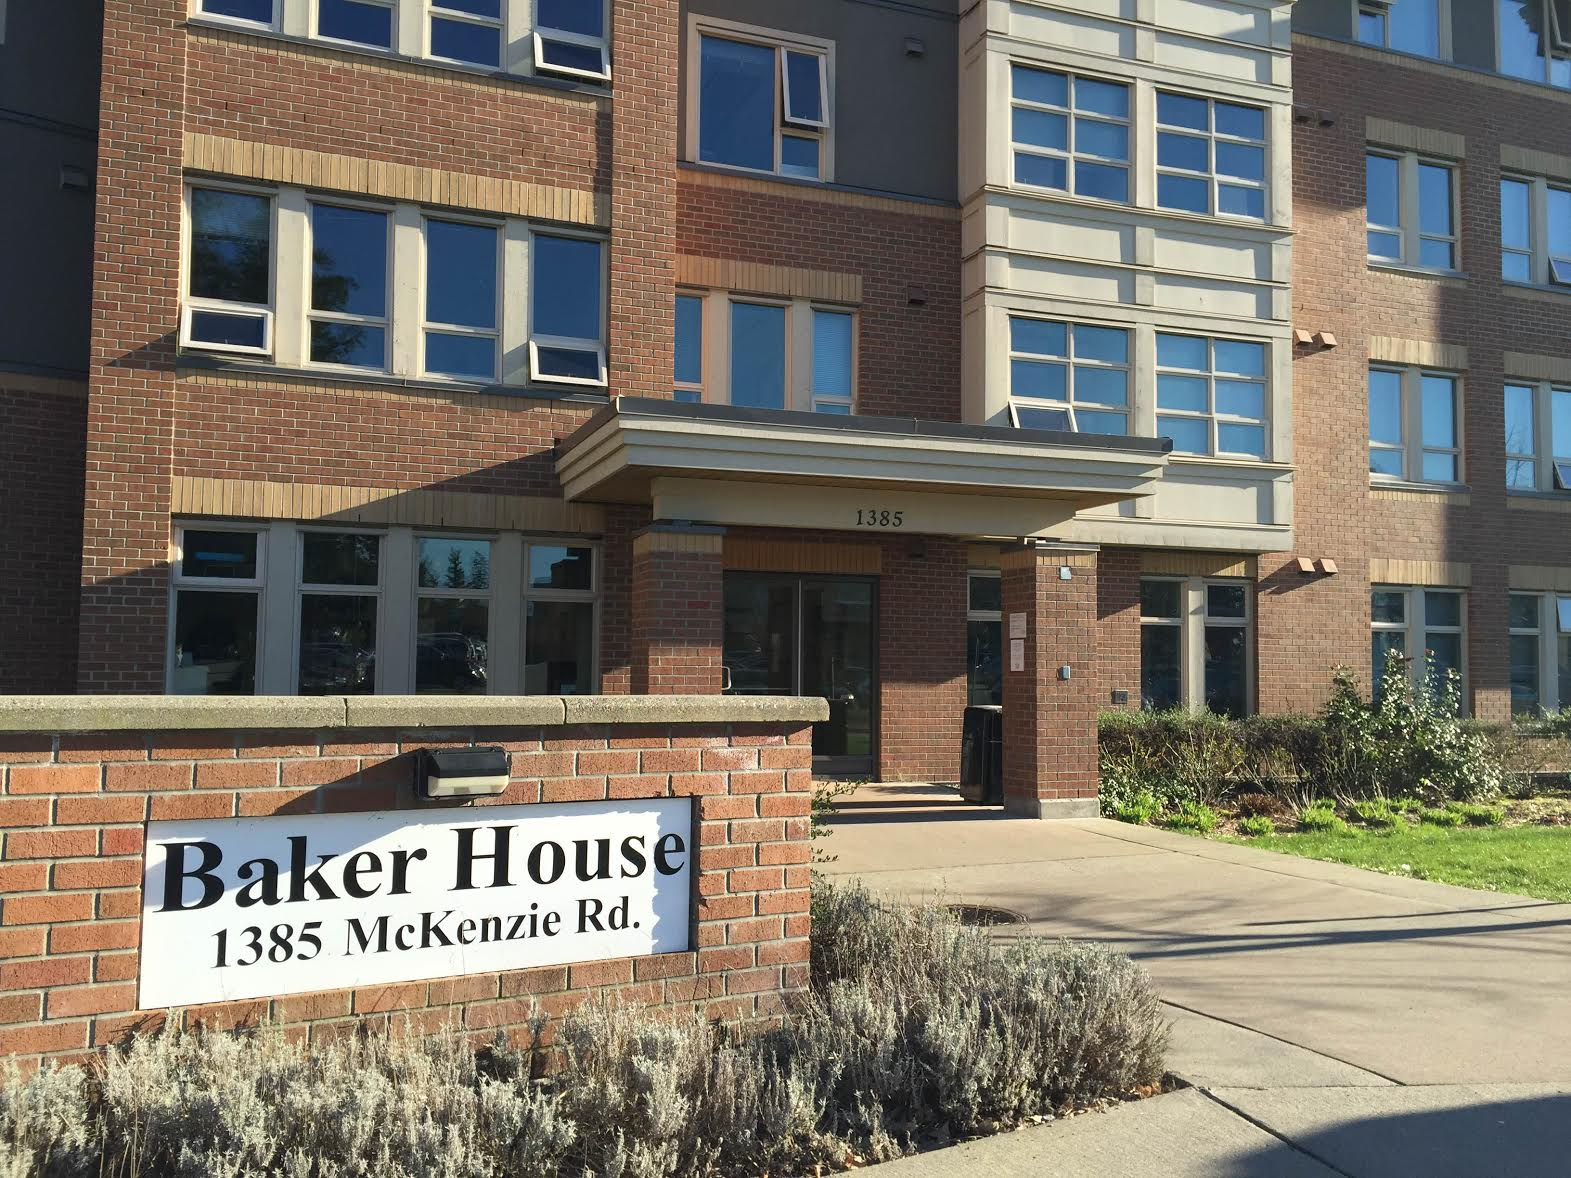 Baker House is the UFV student residence, which hosts activities on- and off-campus. (Image: Ashley Mussbacher)